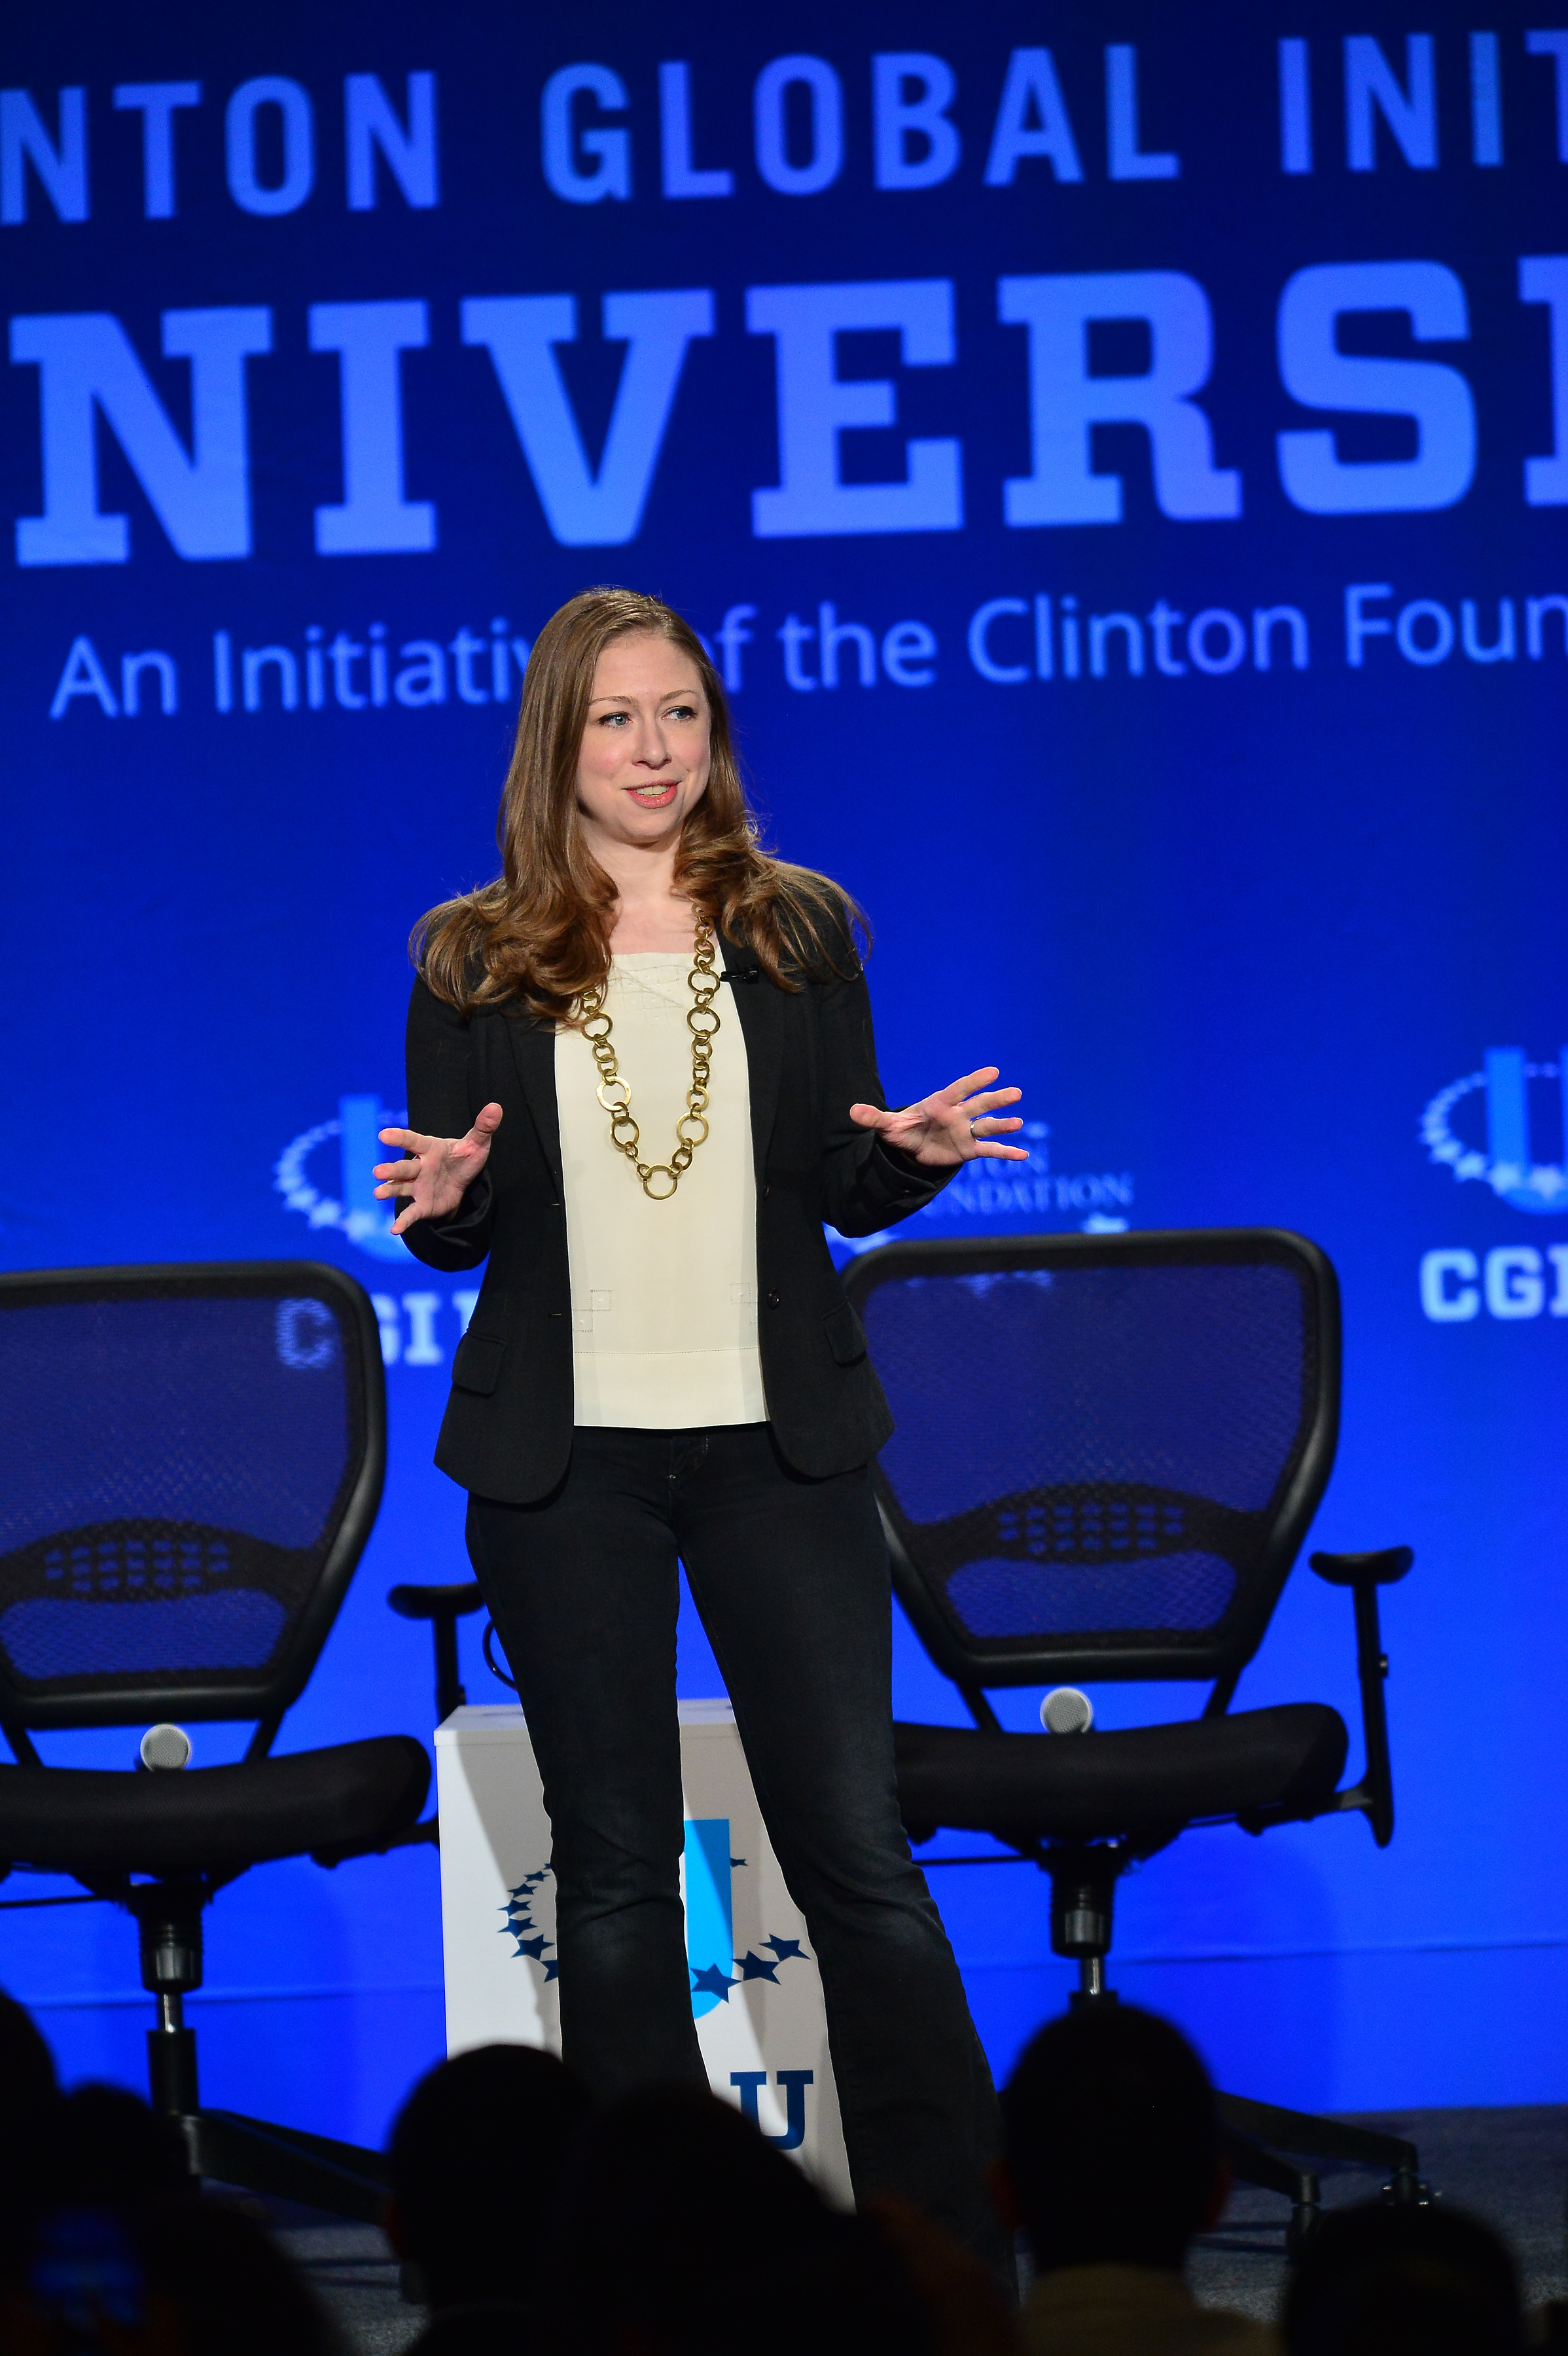 Vice Chair of Clinton Foundation Chelsea Clinton attends Clinton Global Initiative University - Fast Forward: Accelerating Opportunity for All at University of Miami on March 6, 2015 in Miami, Florida.